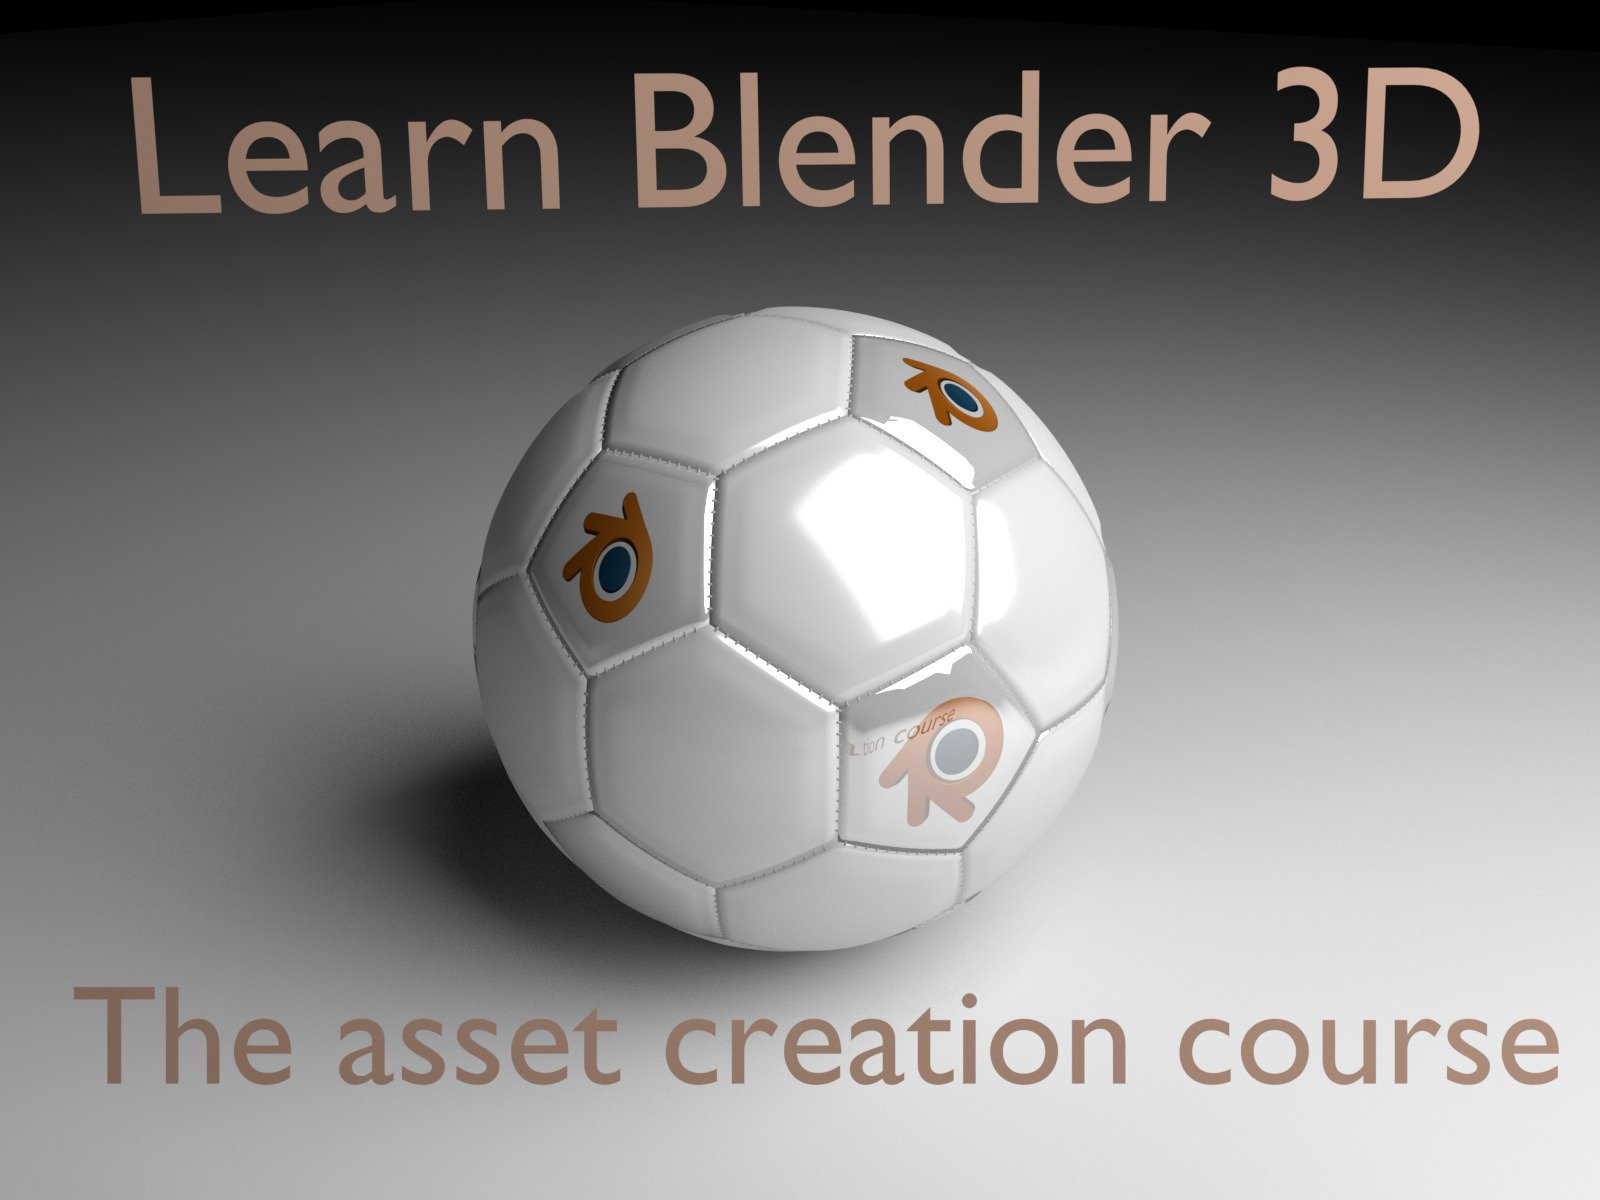 Learn Blender 3D - Season 1